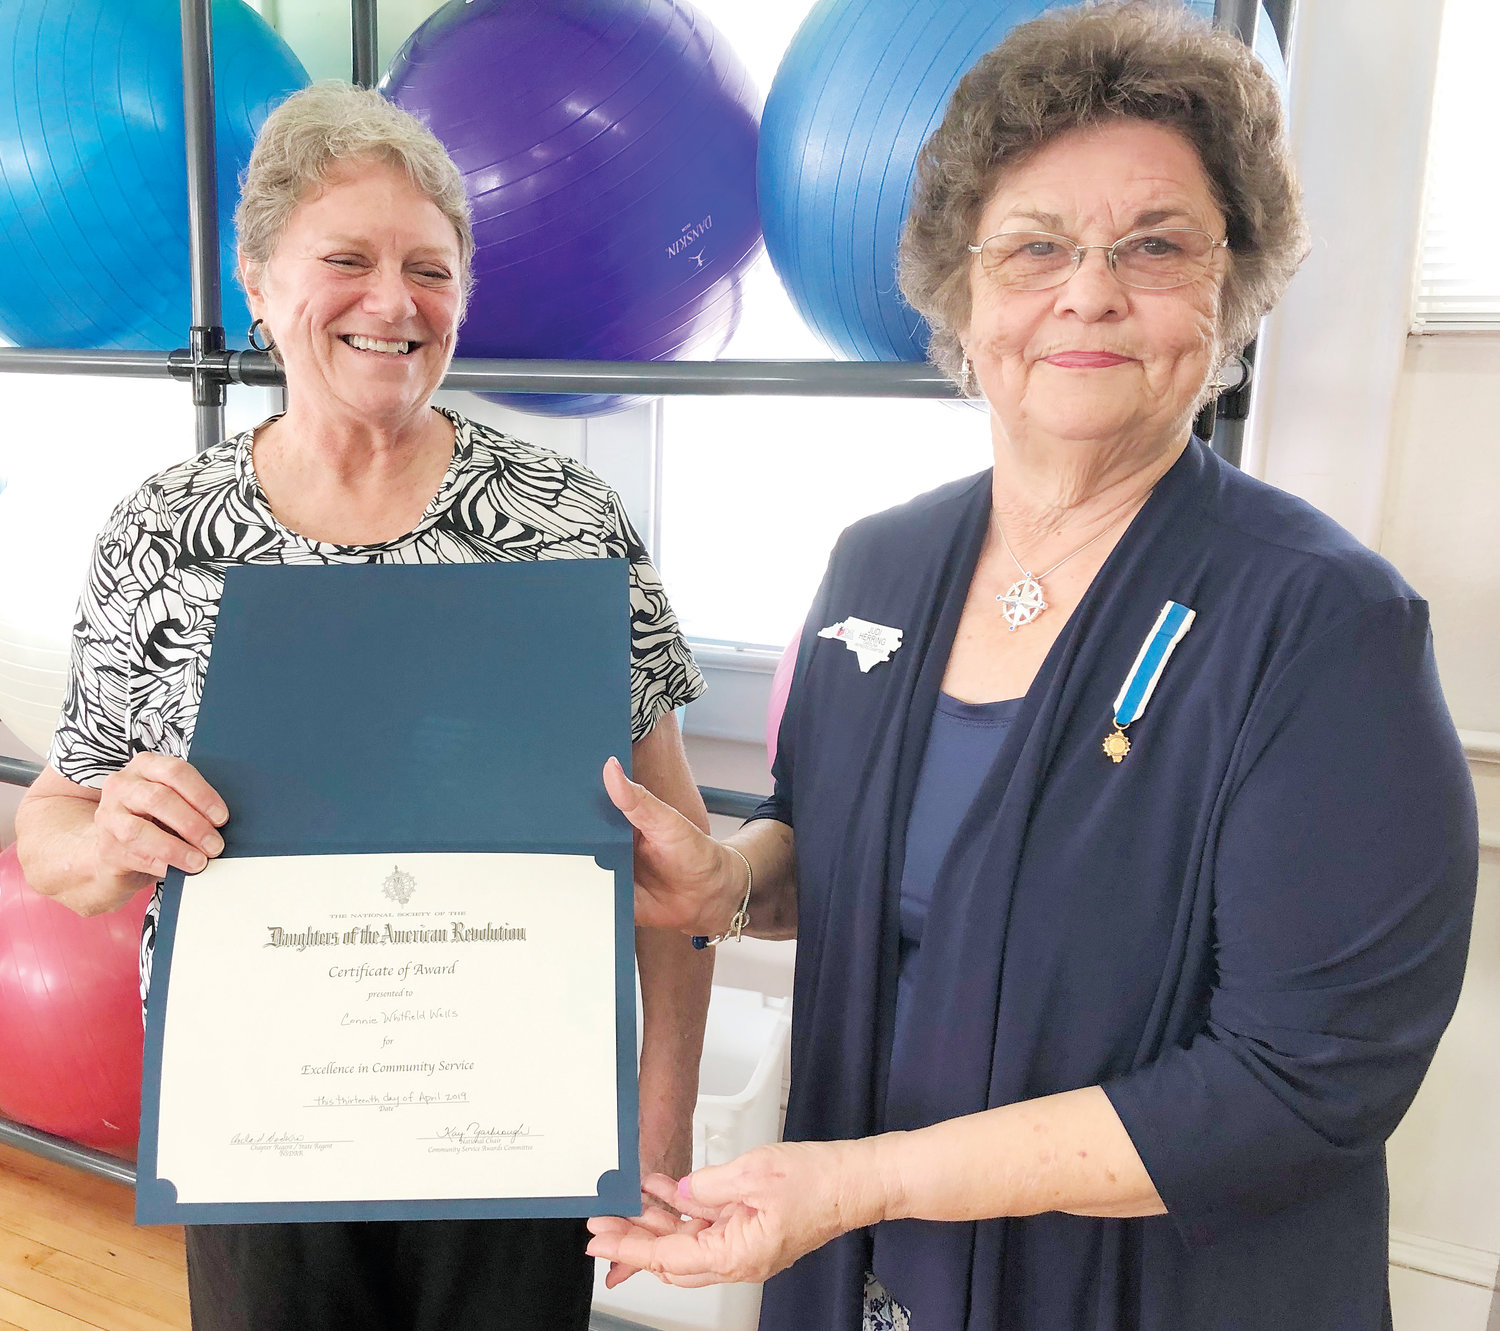 Connie Wells, right, is presented a certificate and pinned upon receiving the community service award by Judi Herring, registrar of the local Carolina Patriots Daughters of the American Revolution chapter of Mount Olive.